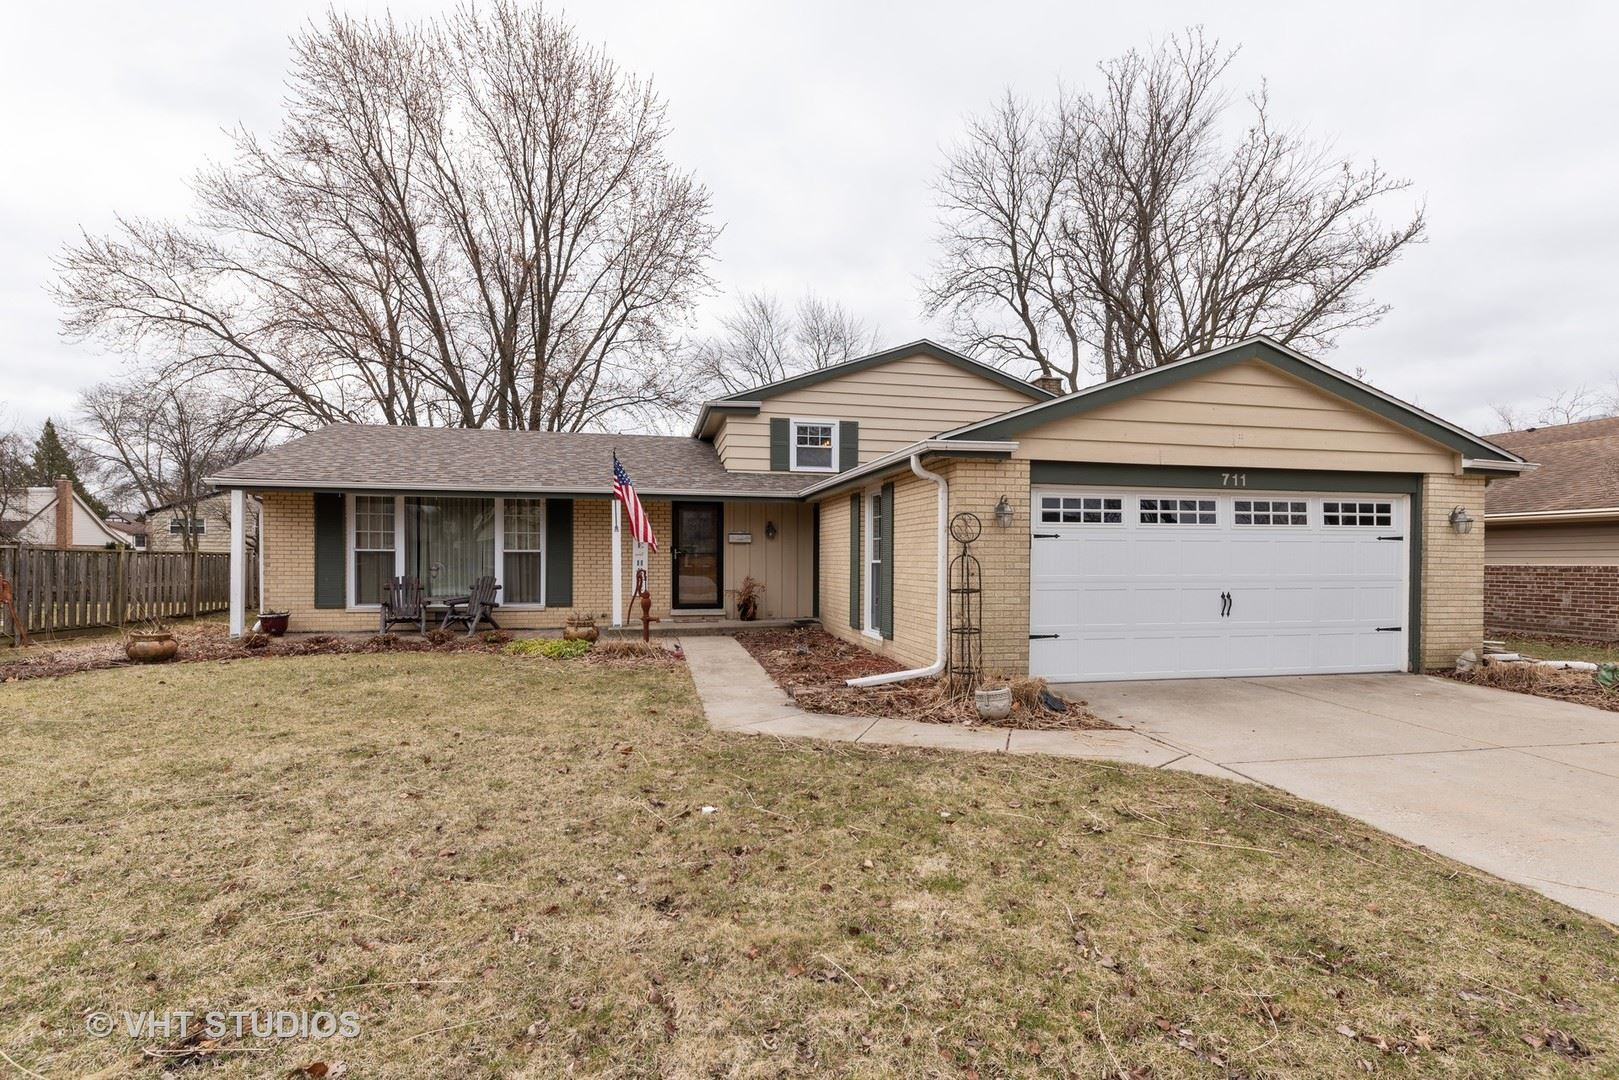 711 E HACKBERRY Drive, Arlington Heights, IL 60004 - #: 10676195